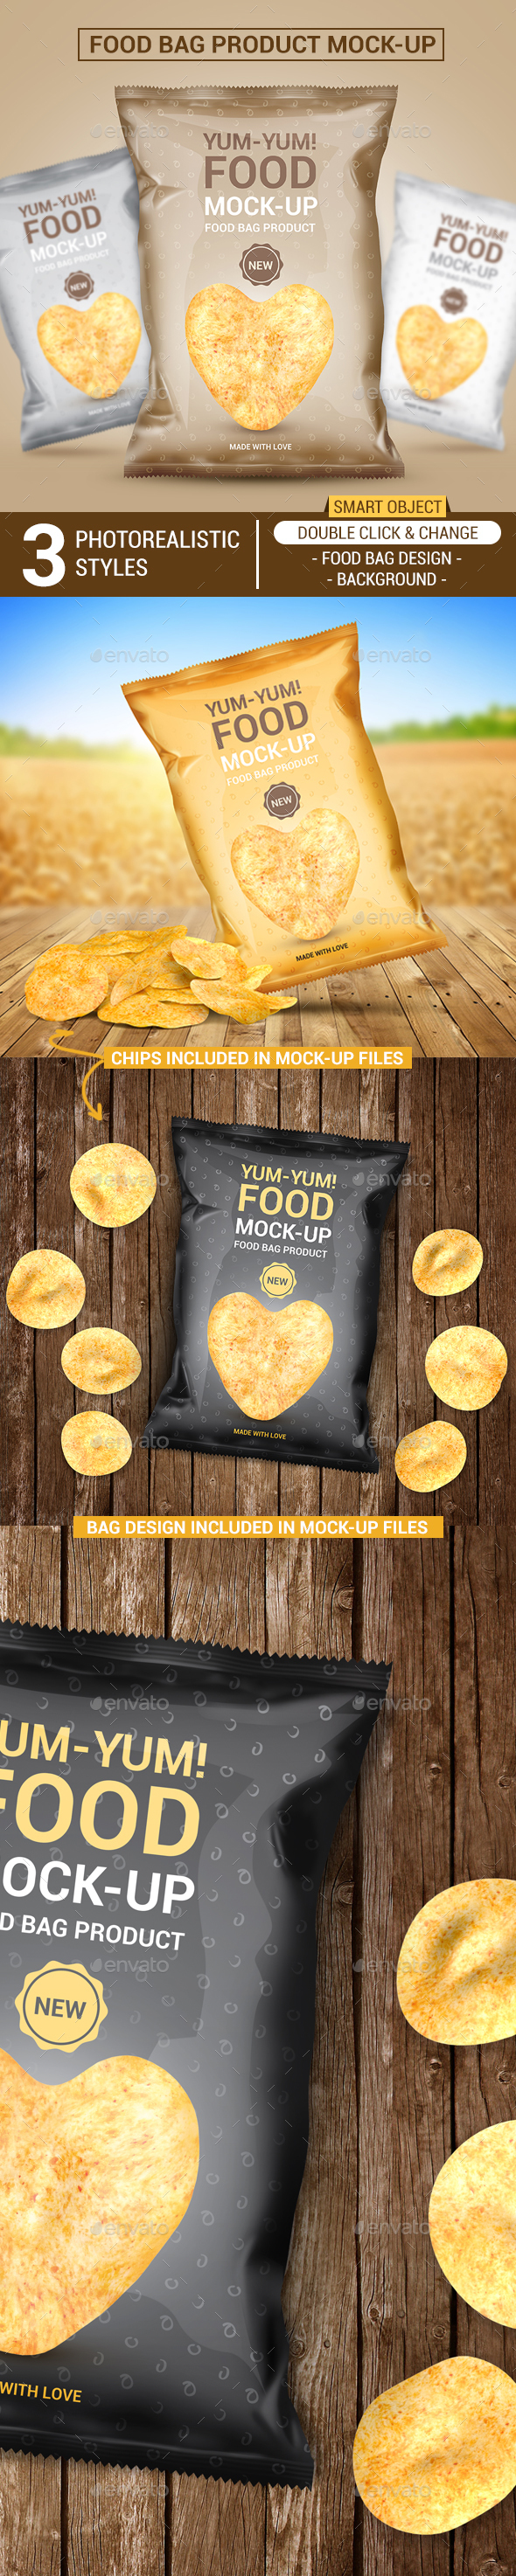 Food Bag Product Mock-Ups - Food and Drink Packaging